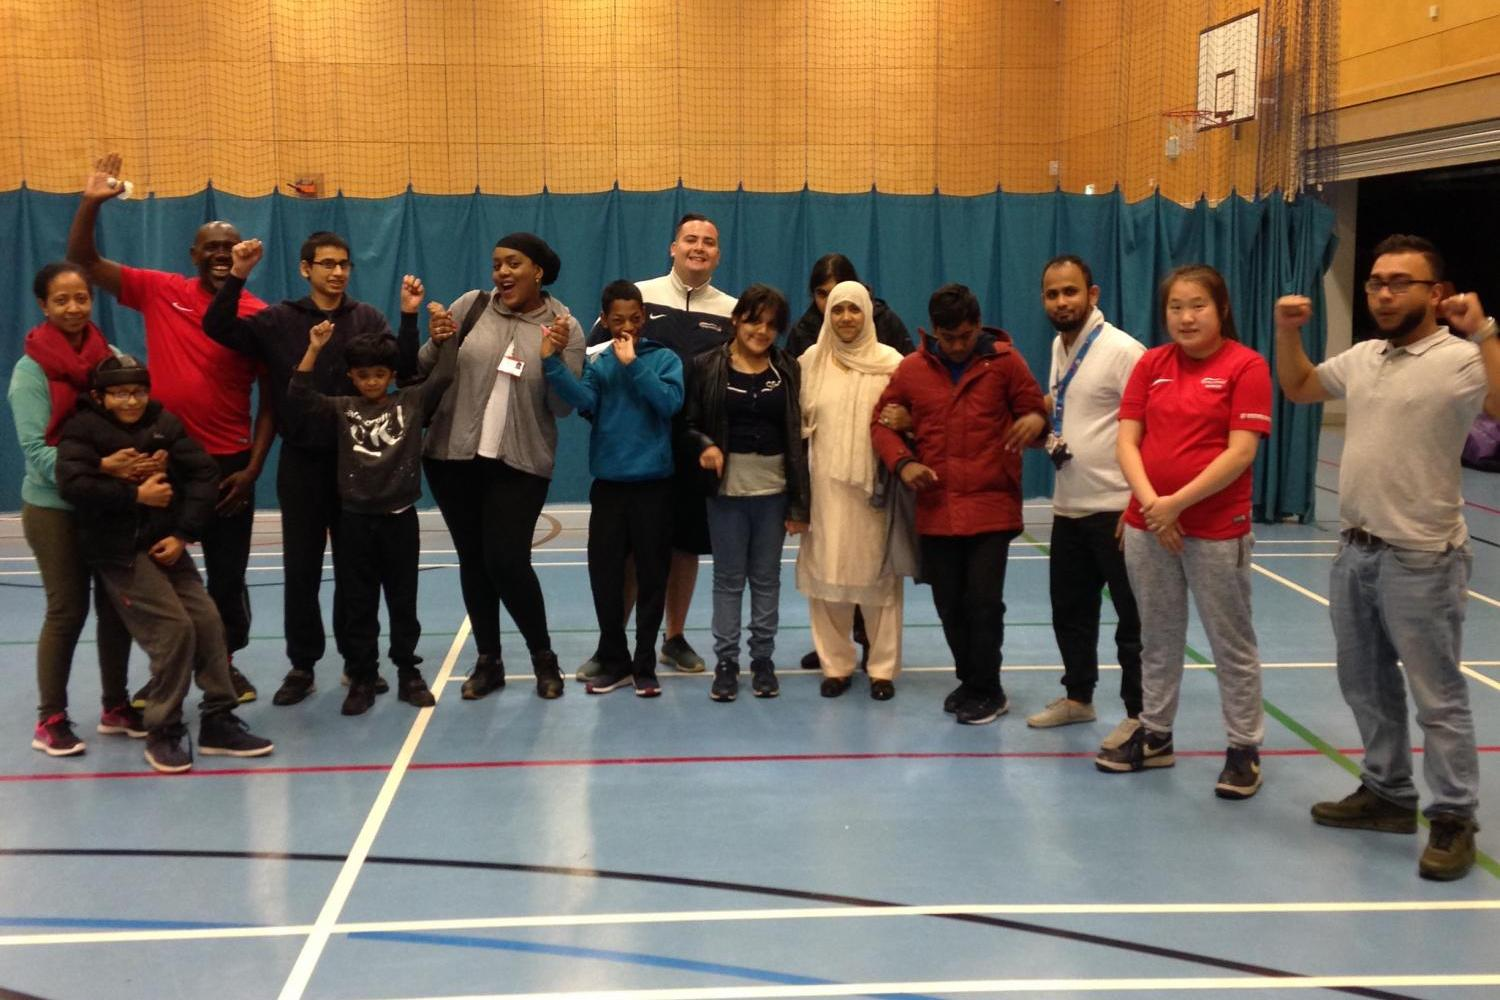 DSC Community Club Tower Hamlets